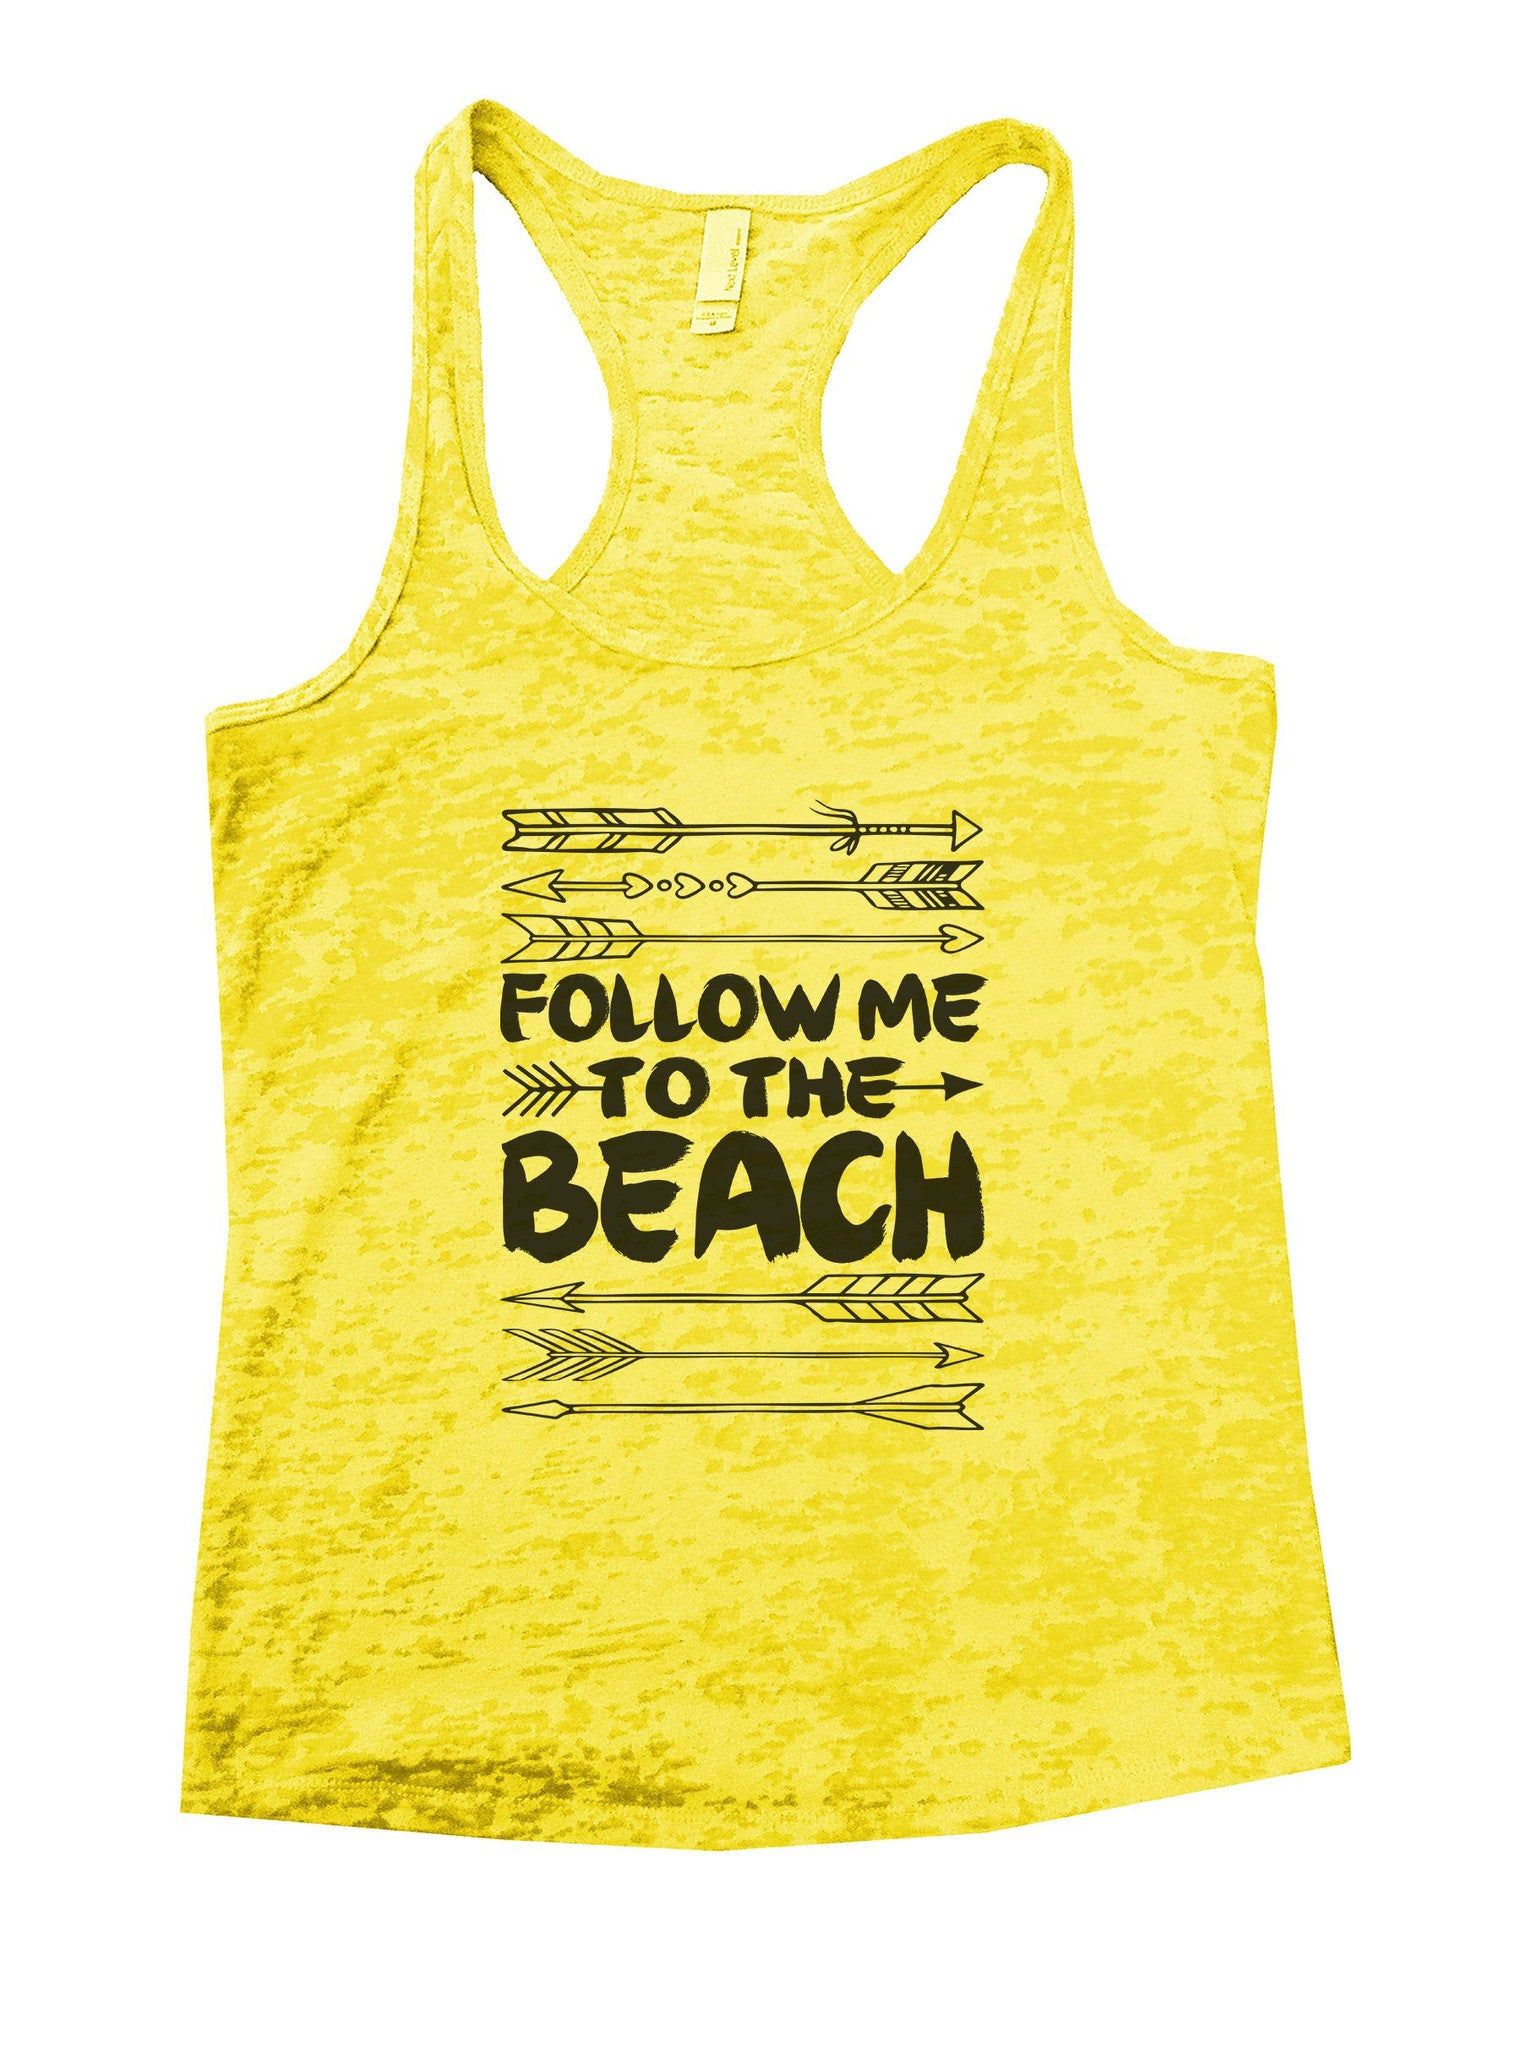 Follow Me To The Beach Burnout Tank Top By BurnoutTankTops.com - 931 - Funny Shirts Tank Tops Burnouts and Triblends  - 7